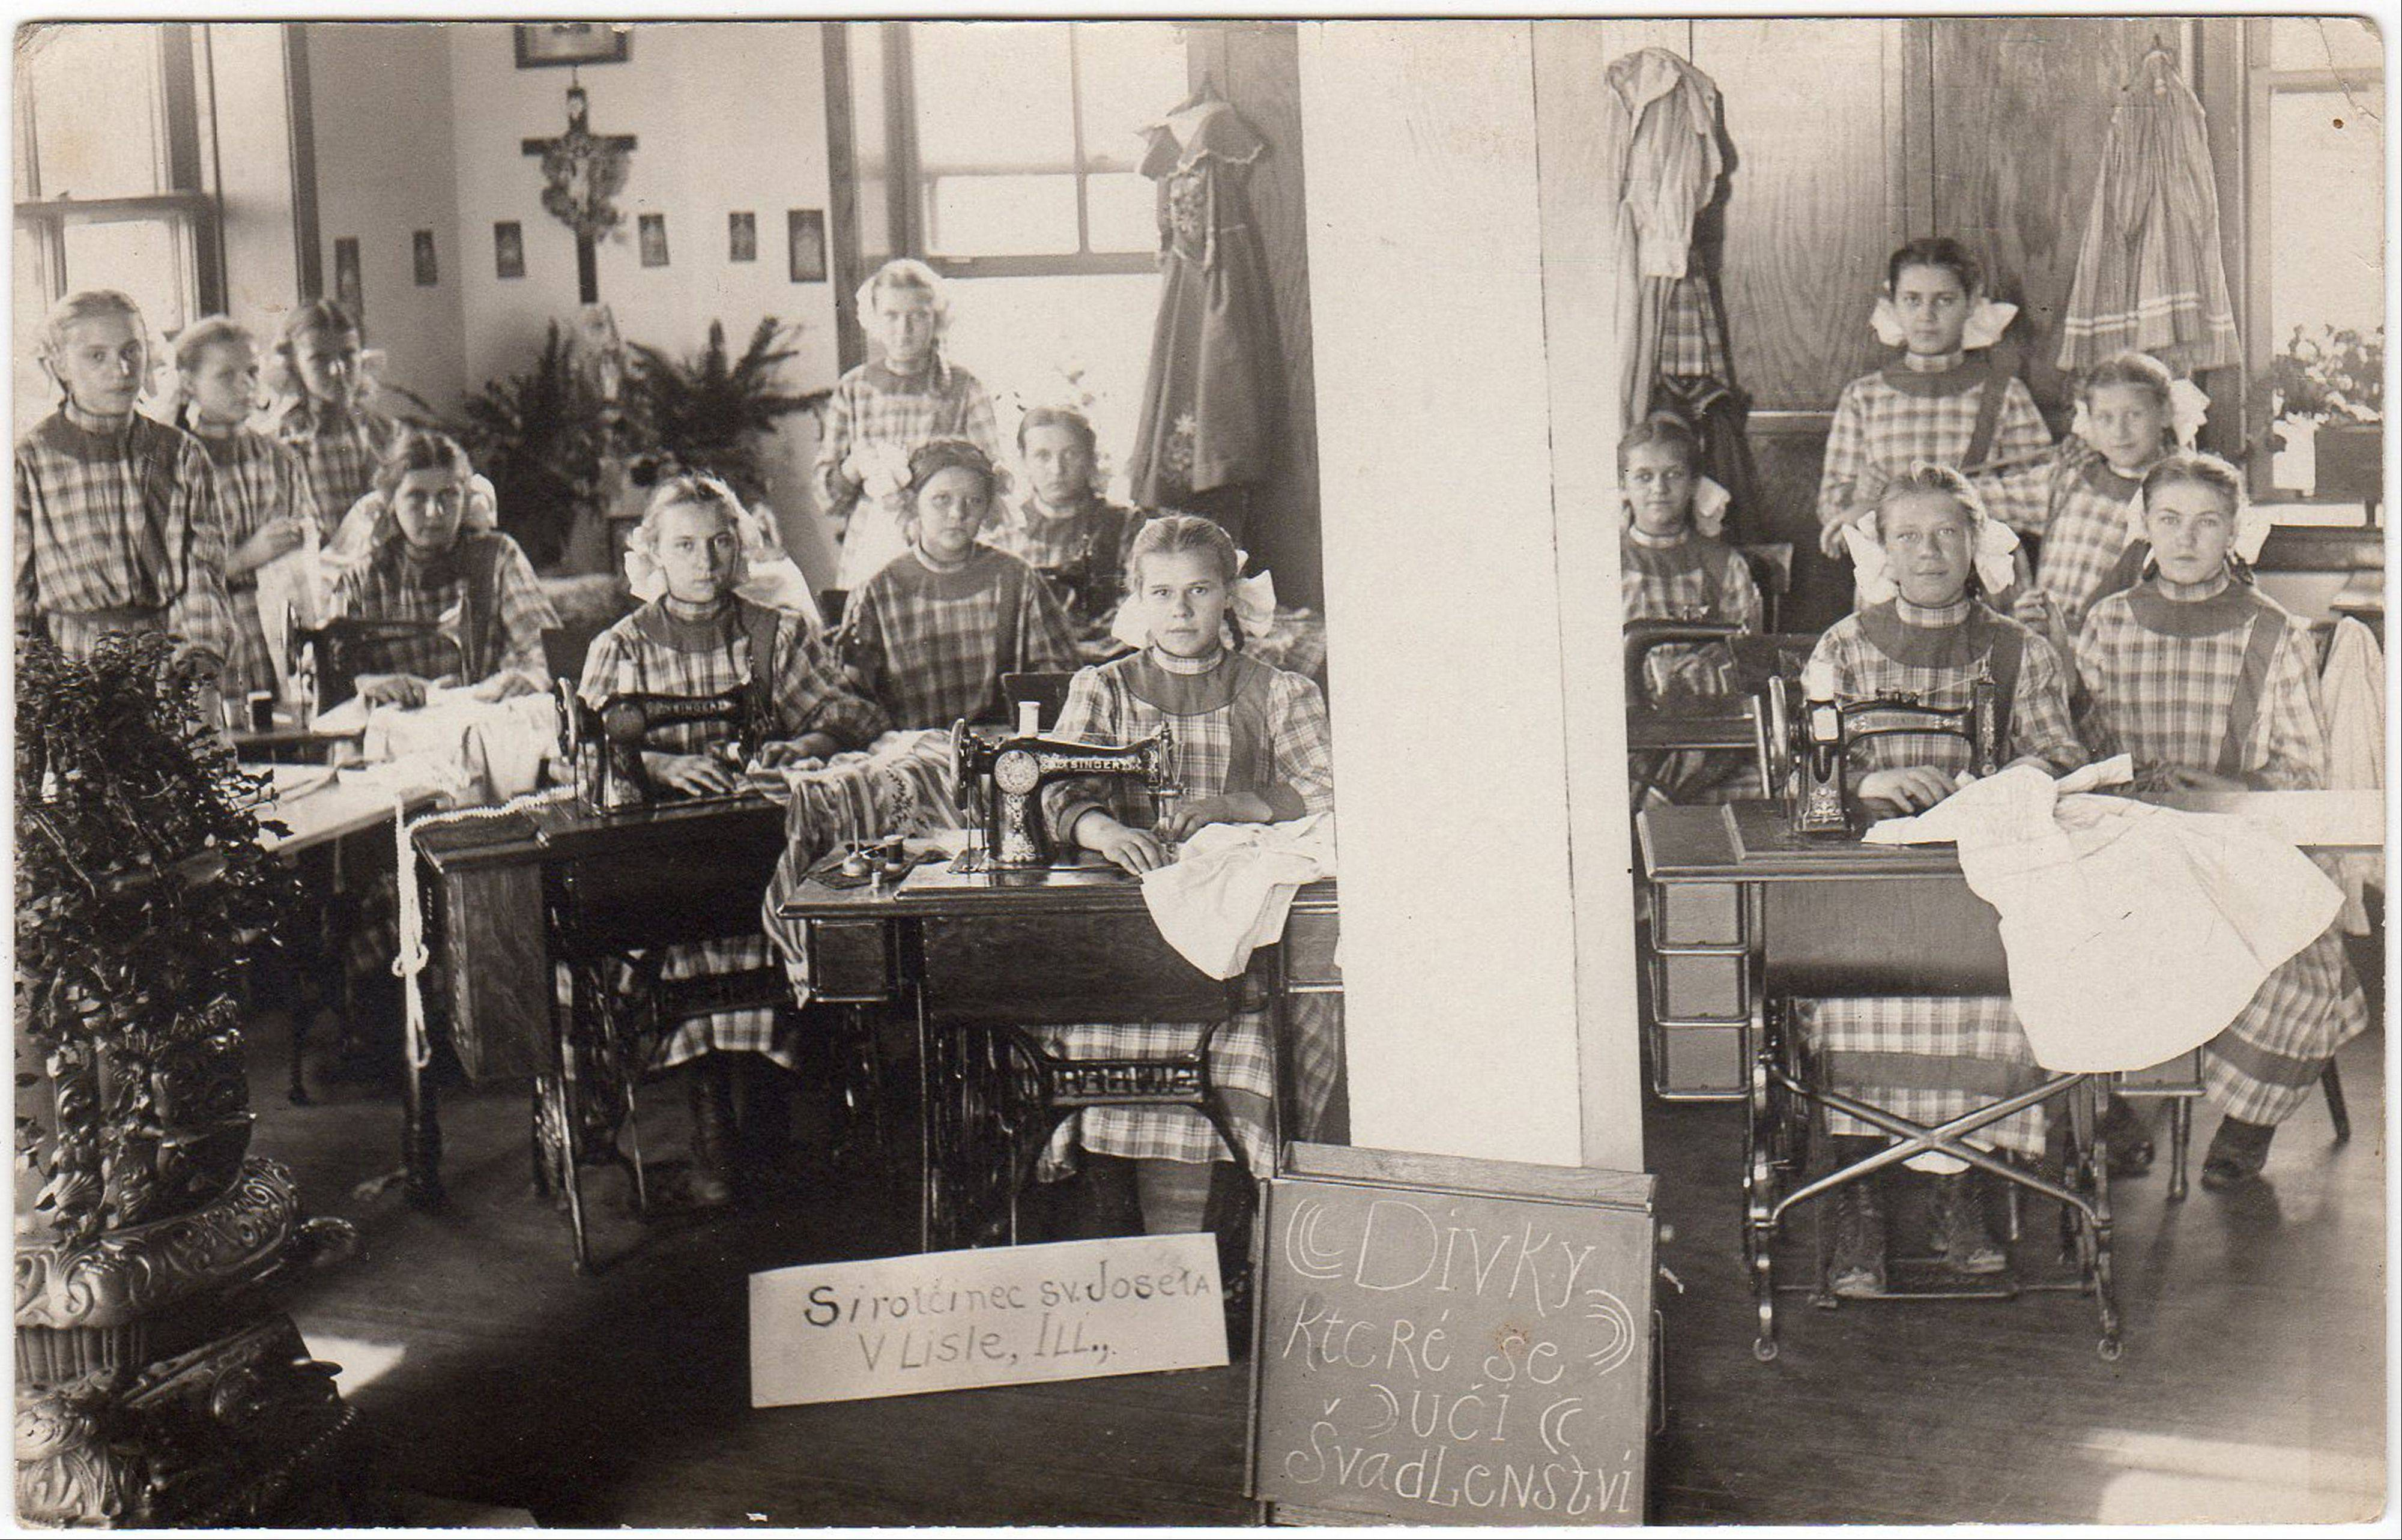 Consumer photography products and services allowed people to turn everyday moments from their own lives -- like sewing class at St. Joseph's Bohemian Orphanage -- into postcards.